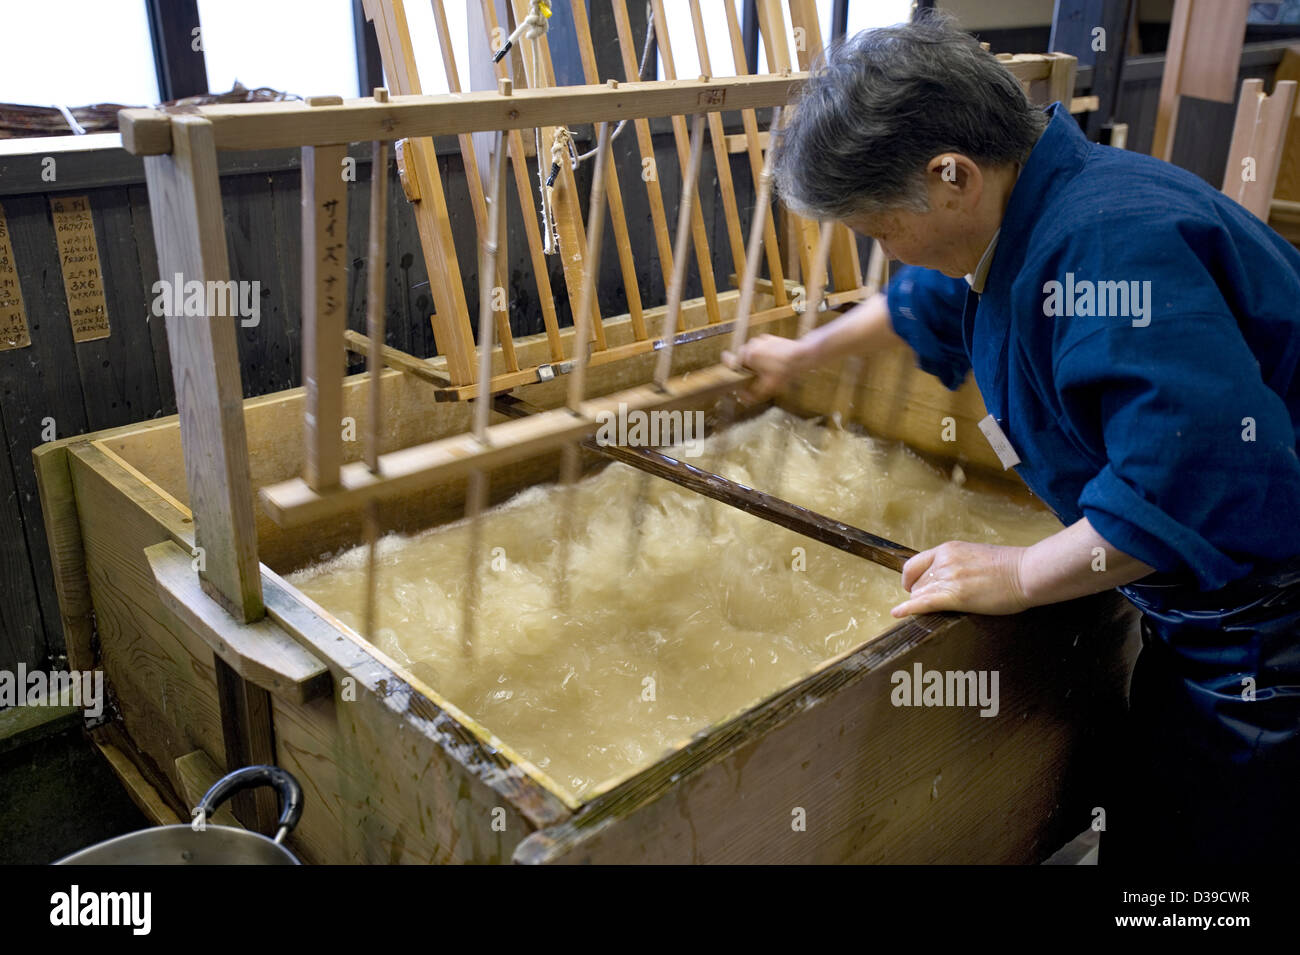 Woman using an umaguwa comb-like tool for mixing water and paper fibers by hand in a wooden tub for making traditional - Stock Image